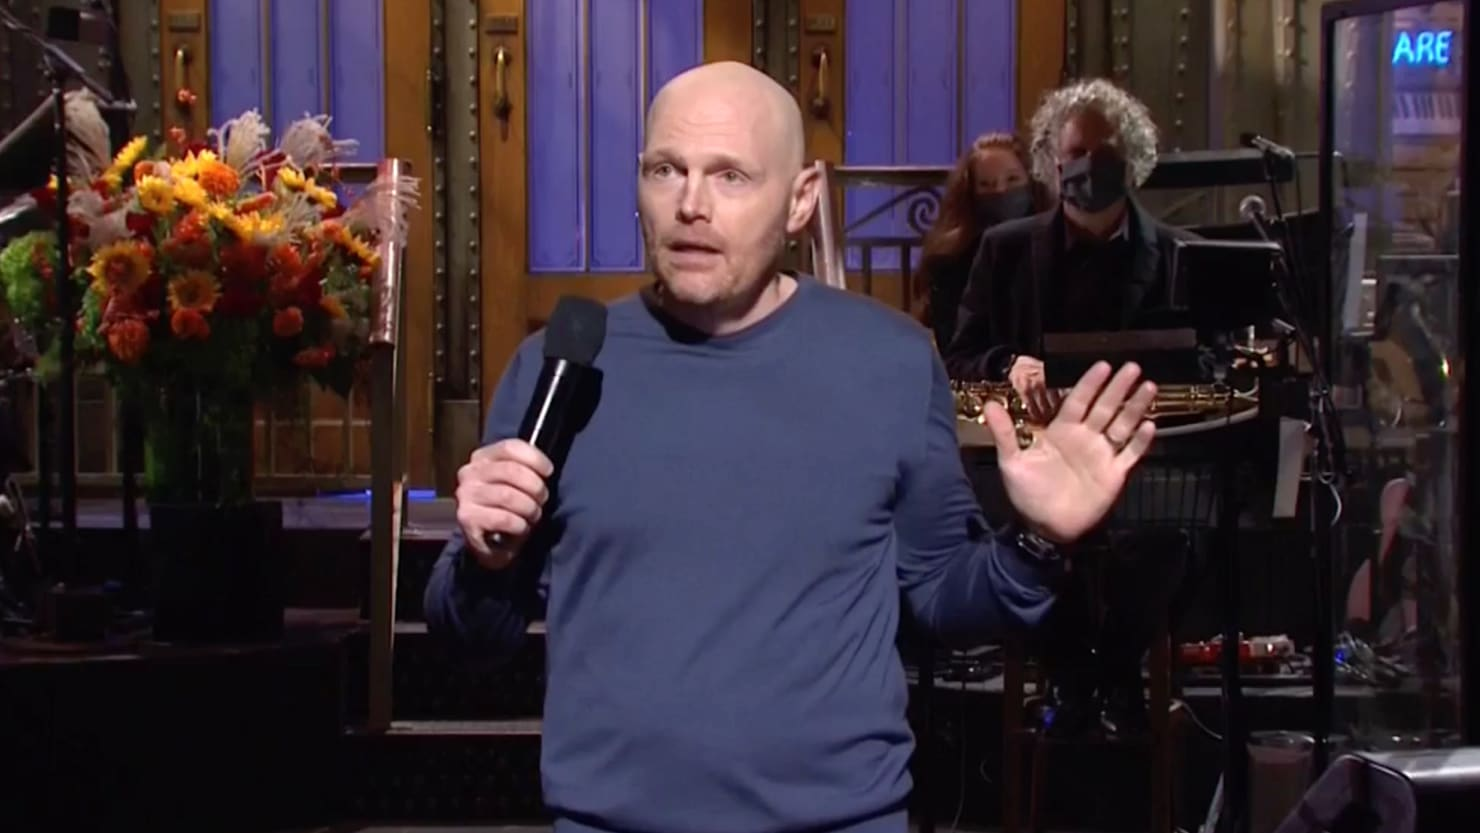 Bill Burr's 'Homophobic' 'SNL' Rant About Pride Month Bombs: 'Worst Monologue' in Years